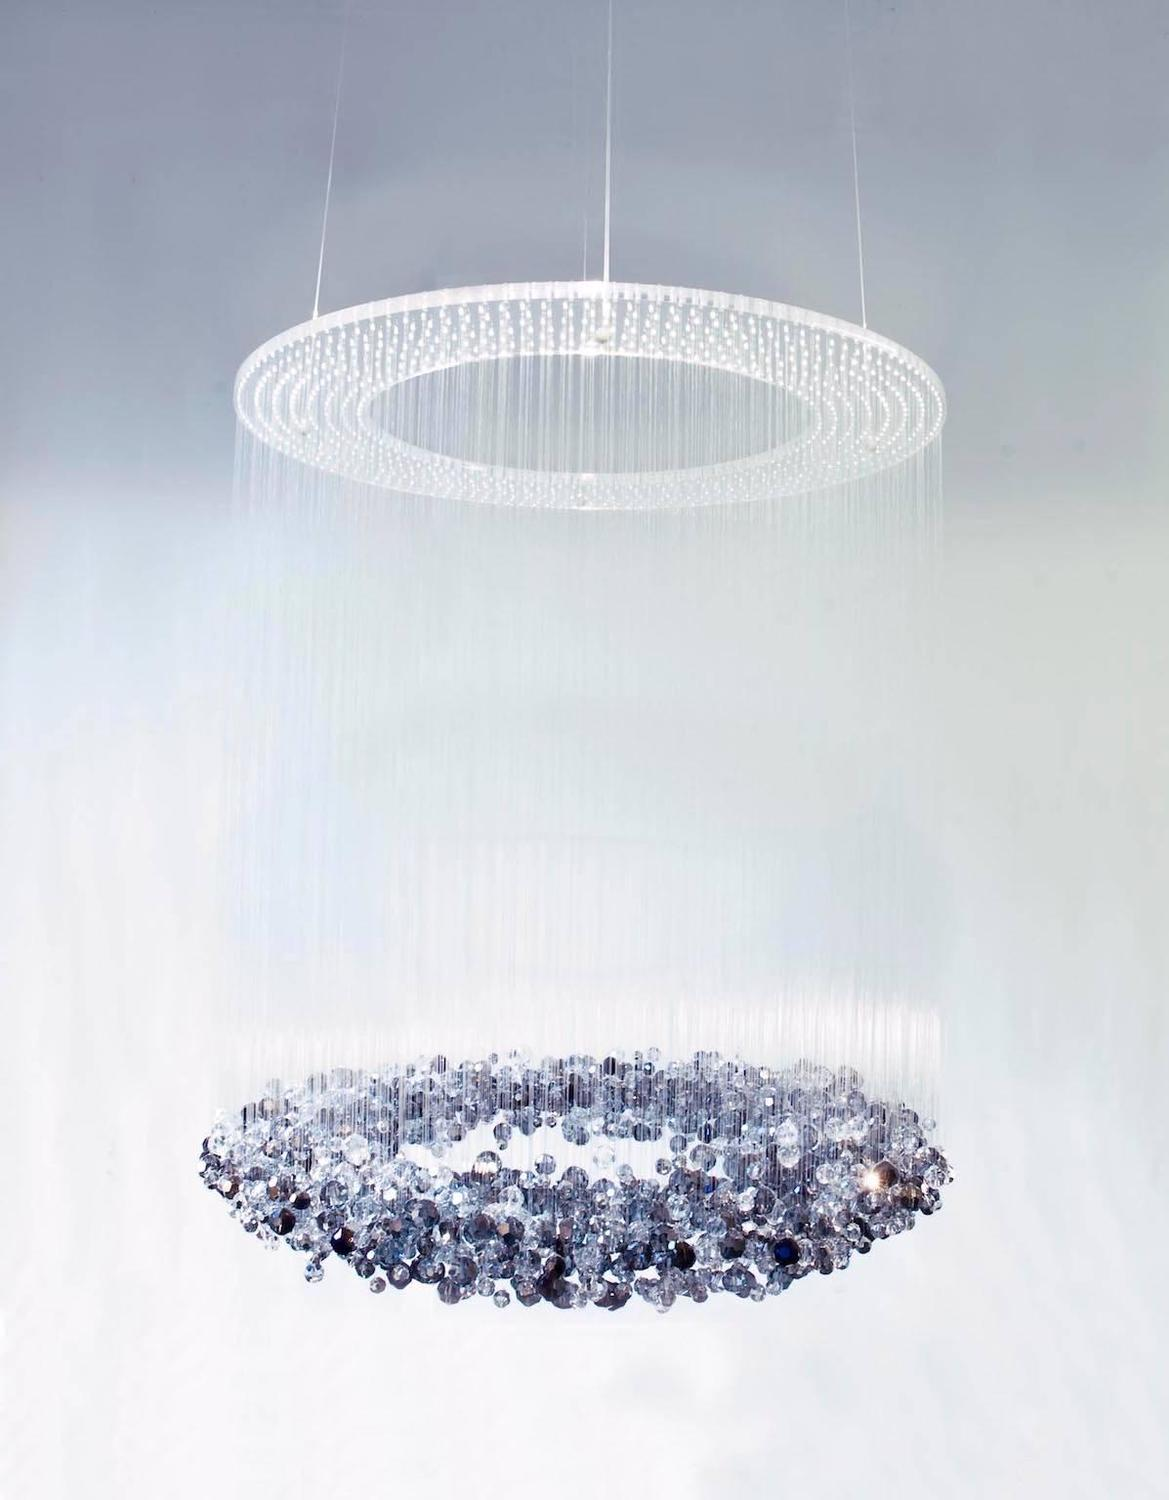 Blue crystals transparent midnight galaxy chandelier for sale at 1stdibs aloadofball Images